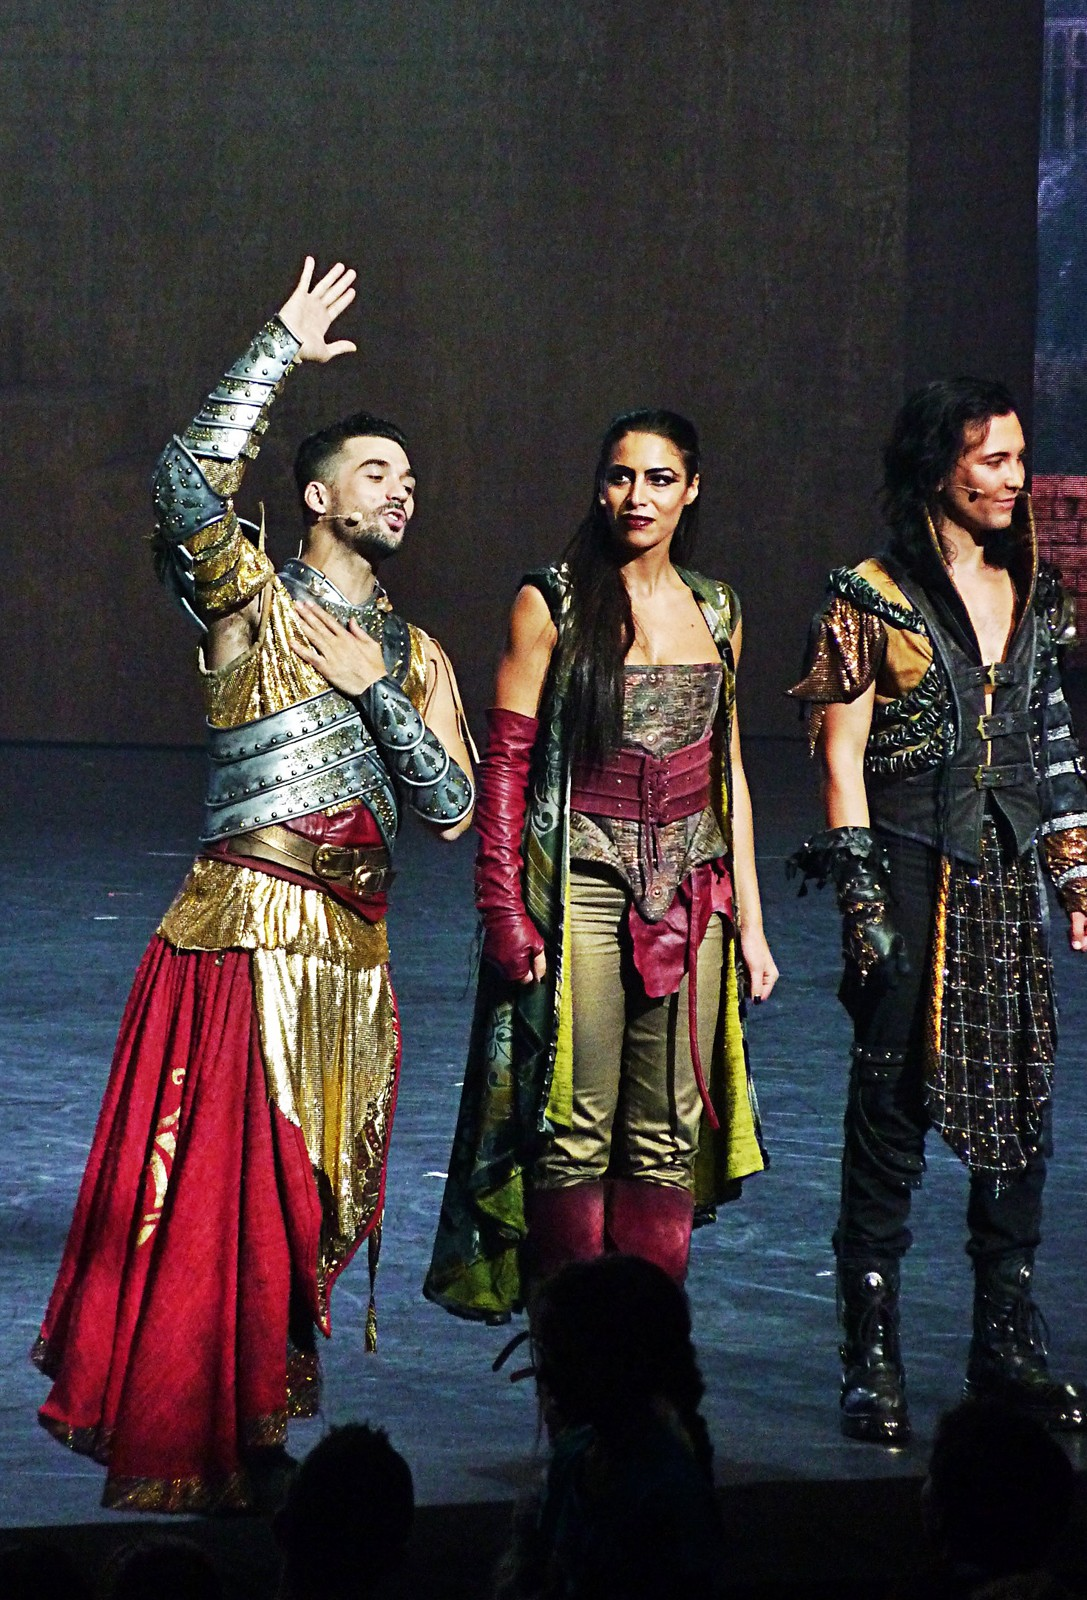 Florent Mothe Zaho et Fabien Incardona dans la Légende du Roi Arthur spectacle musical de Dove Attia Giuliano Peparini scène du palais des congrès photo united states of paris blog